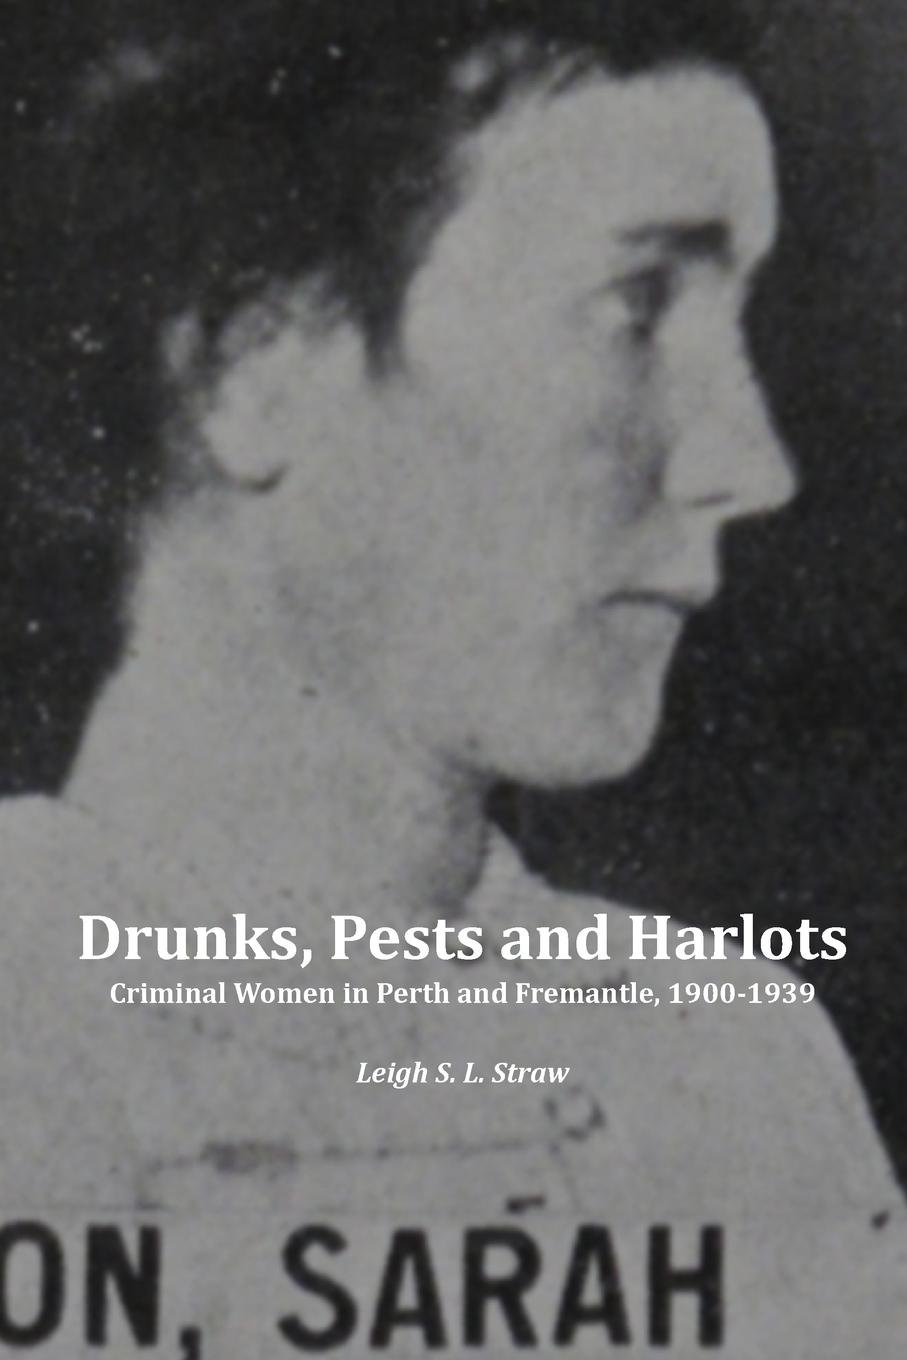 Drunks, Pests and Harlots: Criminal Women in Perth and Fremantle, 1900-1939 ebook